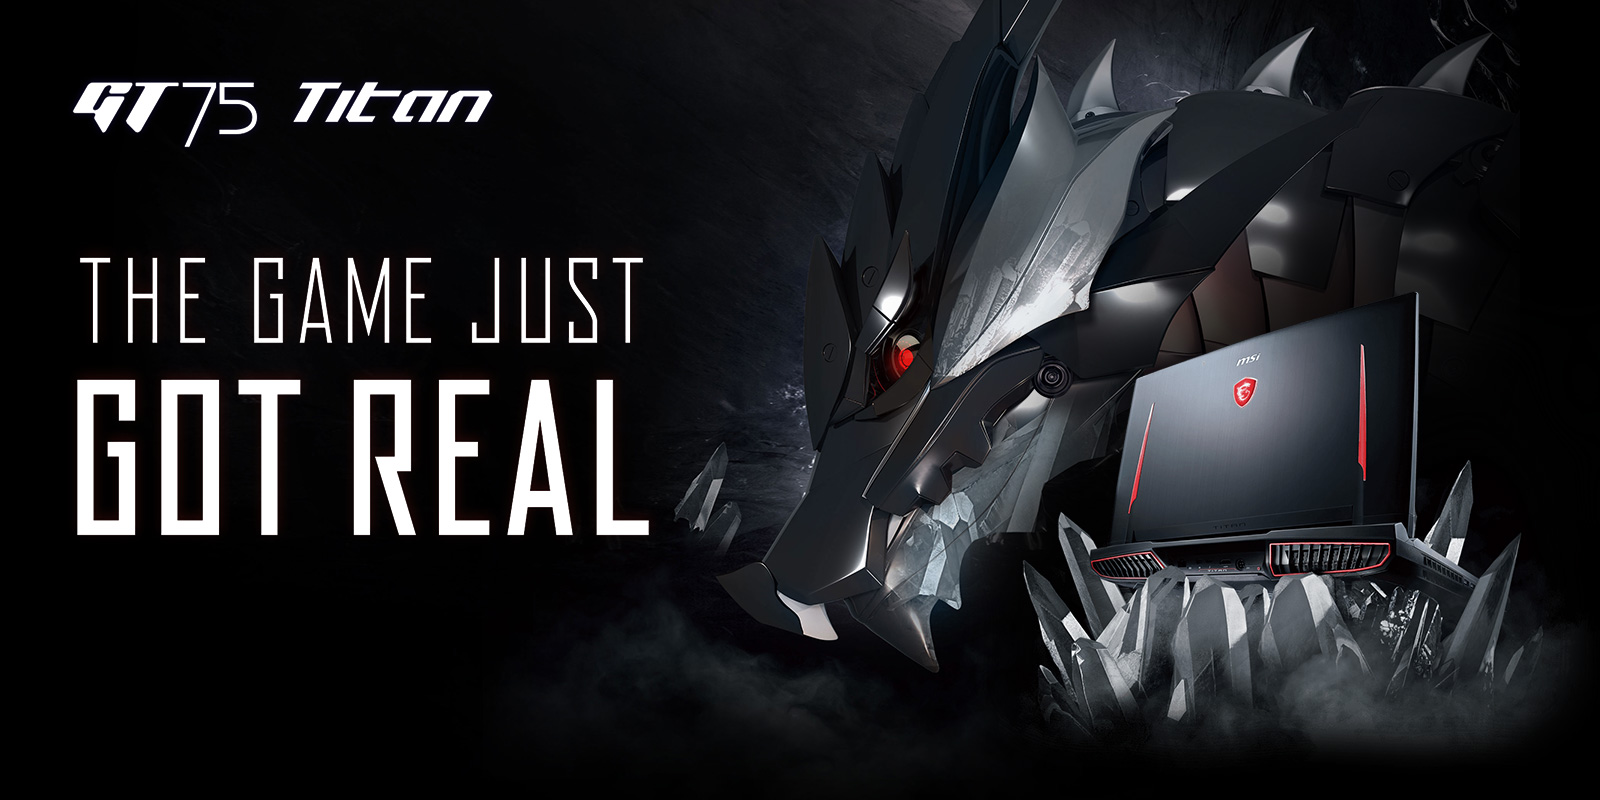 Gigabyte GT75 TITAN Gaming Laptop banner showing the laptop next to a metal red-eye dragon and text that reads: THE GAME JUST GOT REAL